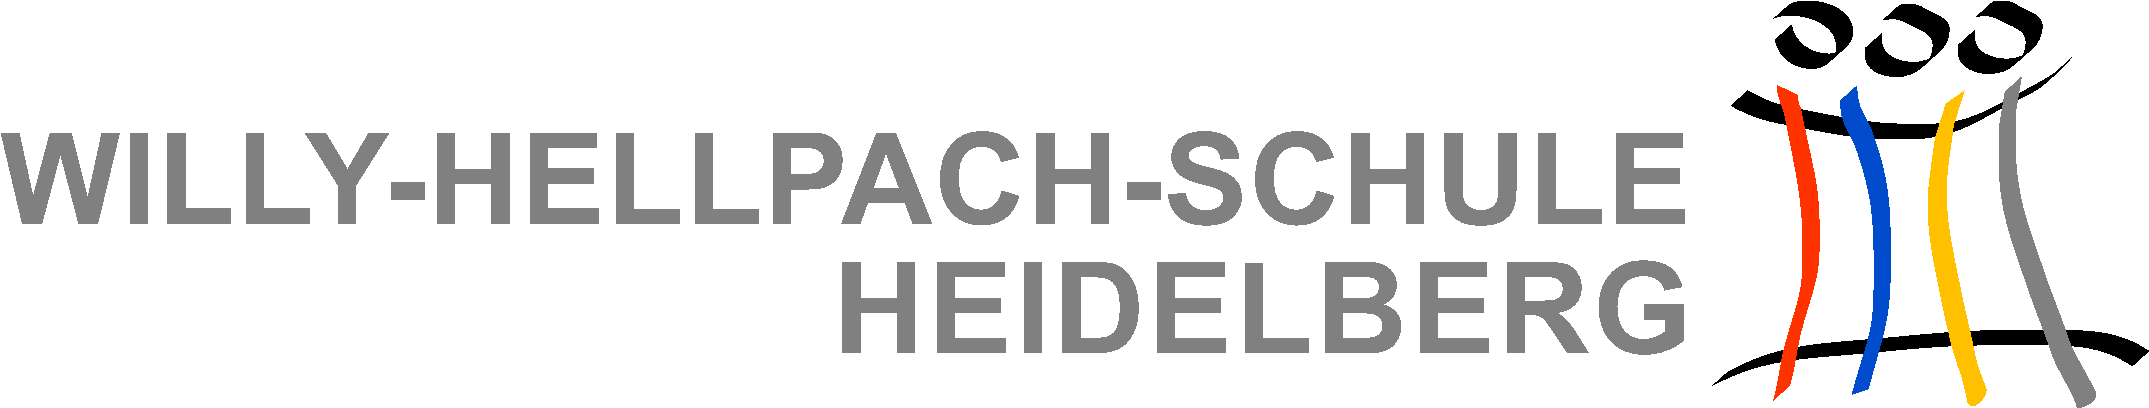 Willy-Hellpach-Schule Heidelberg